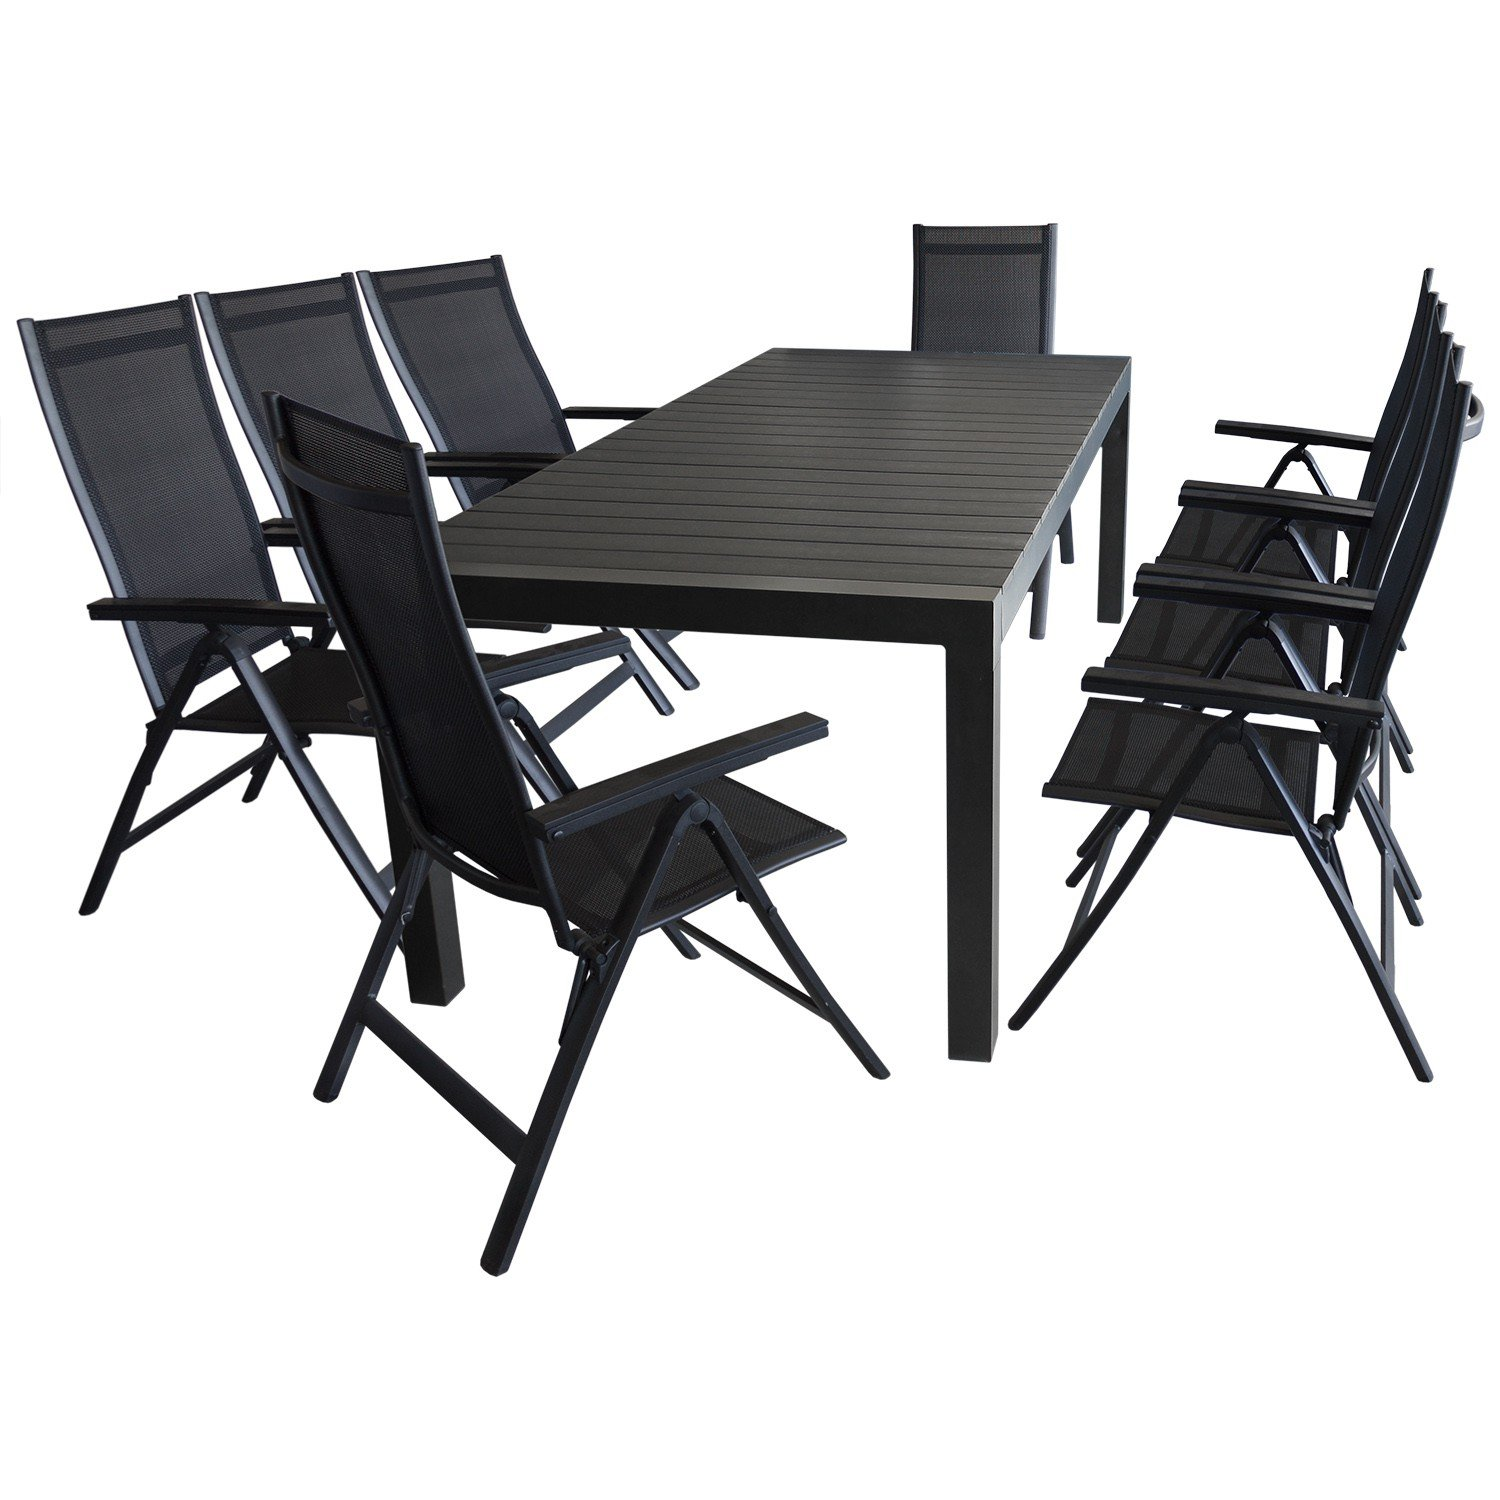 9tlg sitzgruppe gartengarnitur gartenm bel terrassenm bel set aluminium ausziehtisch 224 284. Black Bedroom Furniture Sets. Home Design Ideas